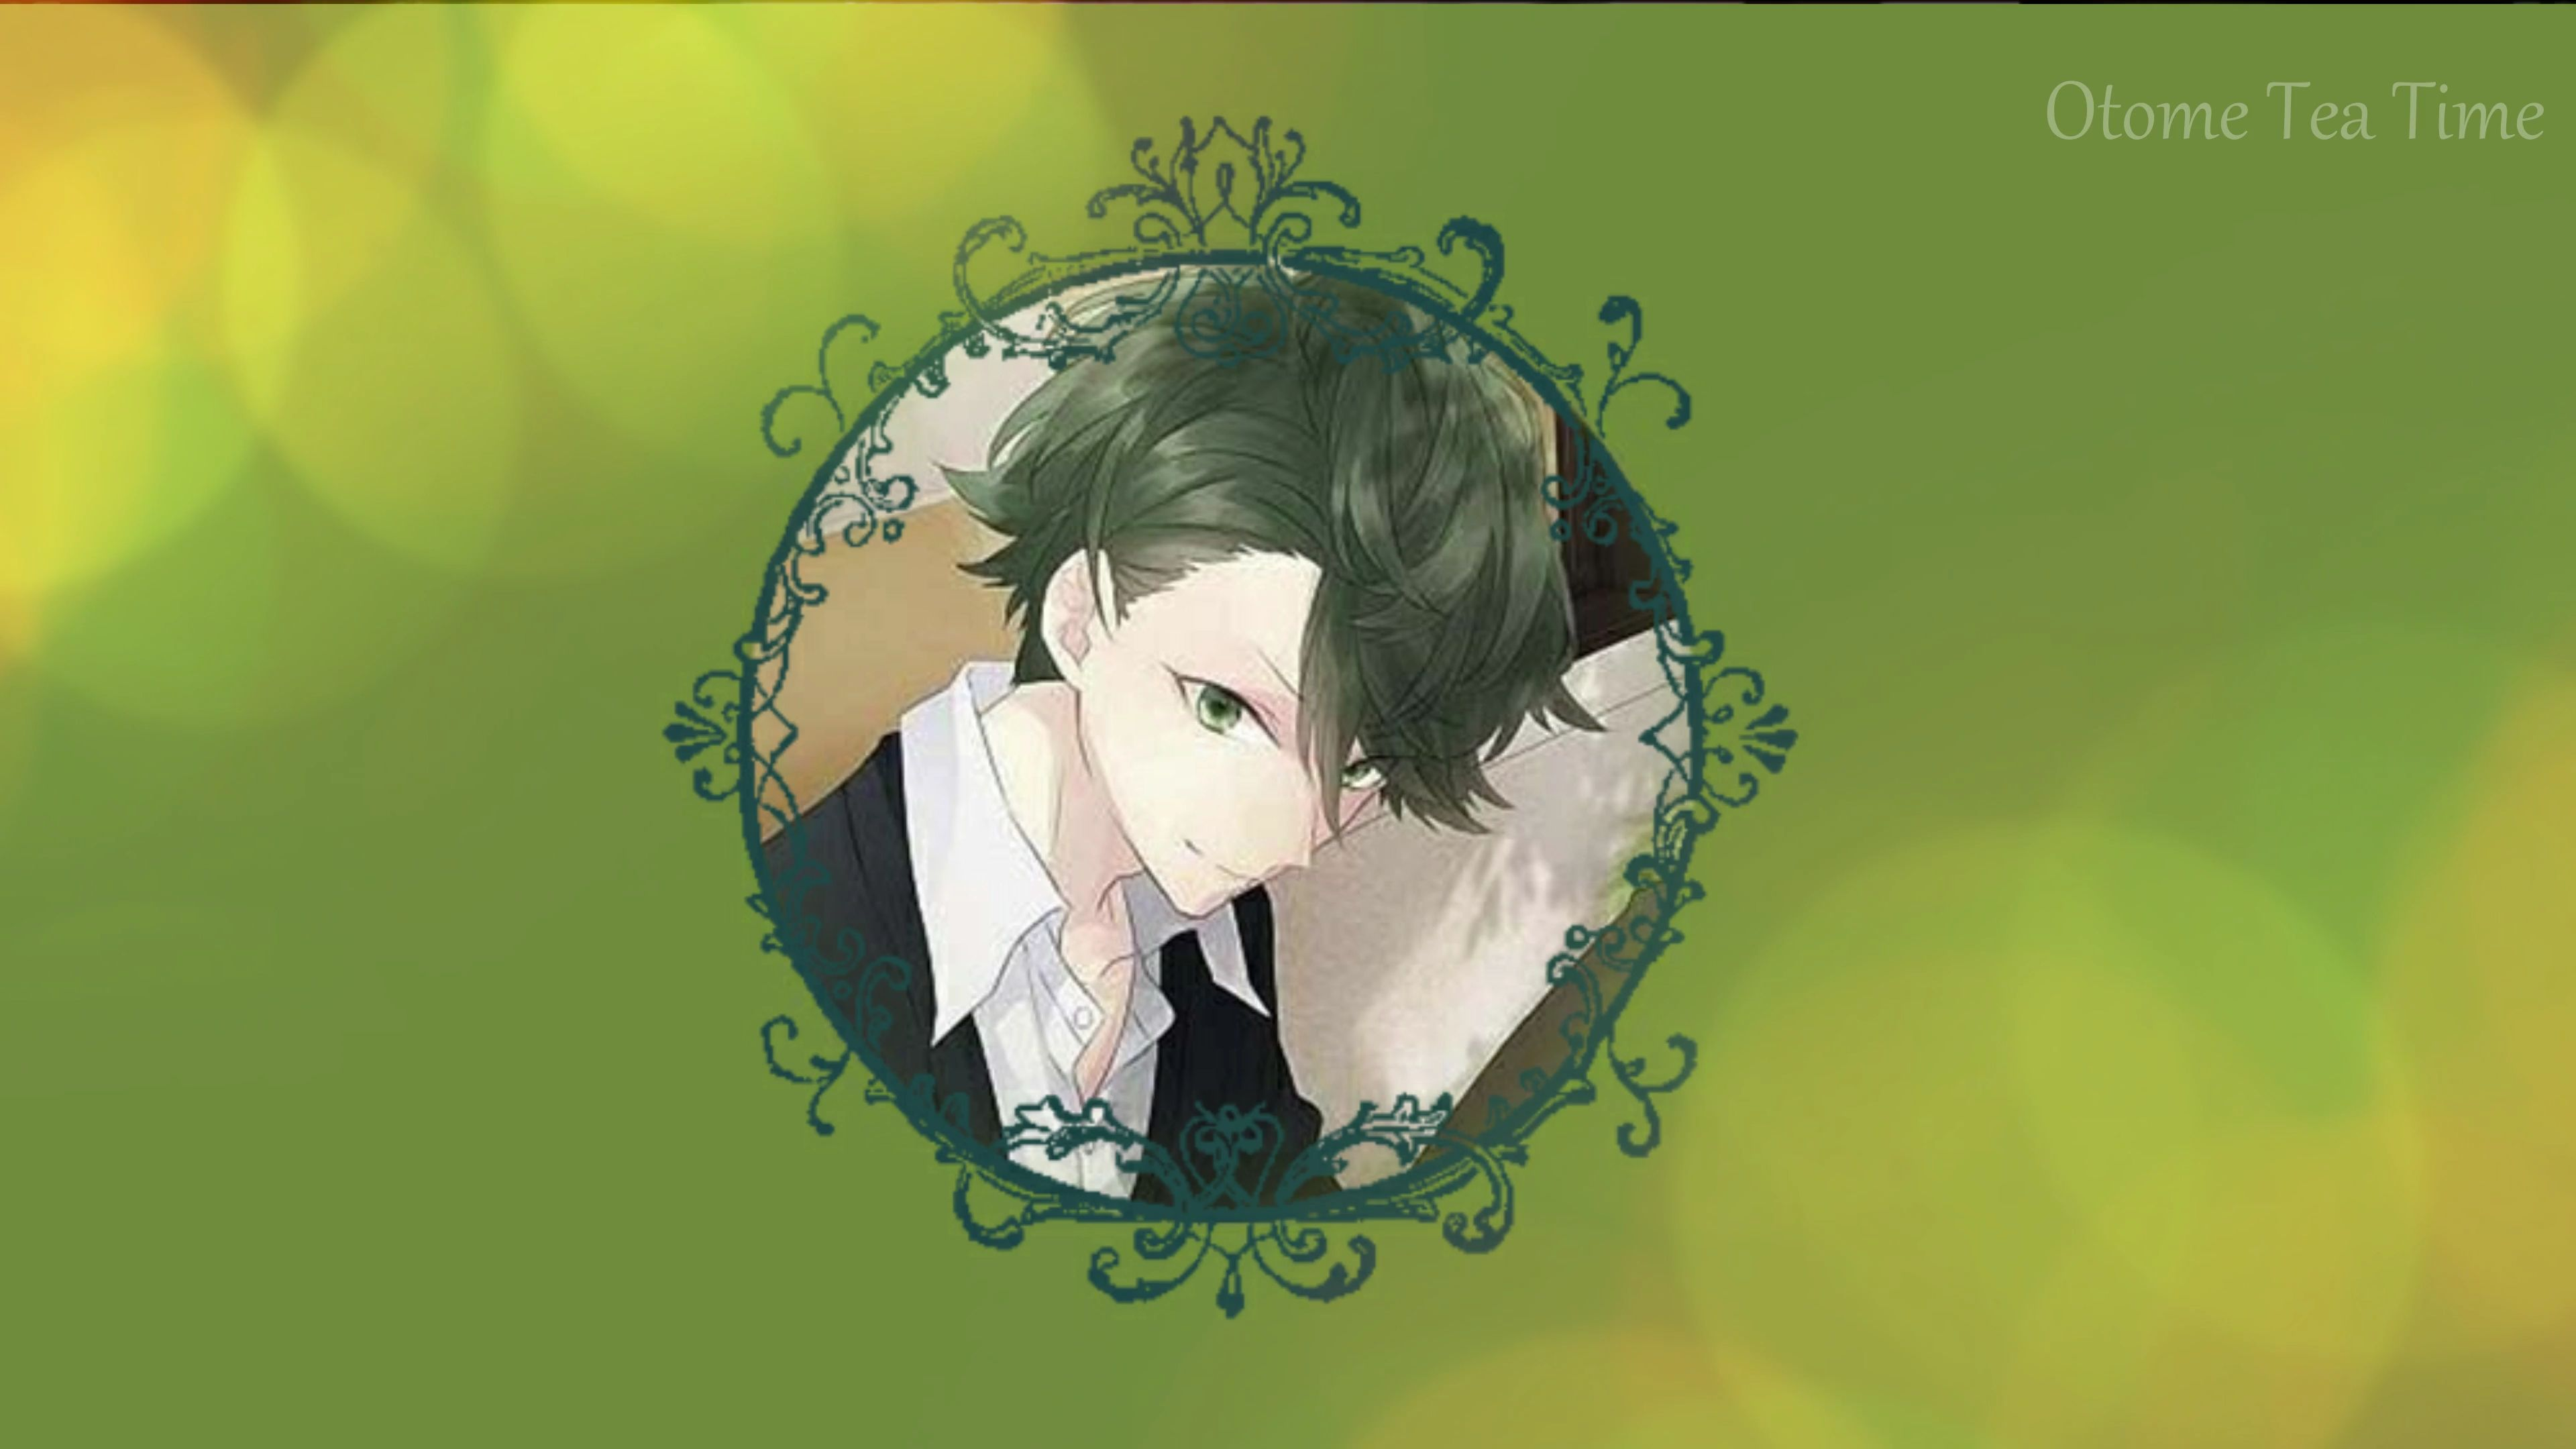 Please consider buying the CD to support the seiyuu #otome